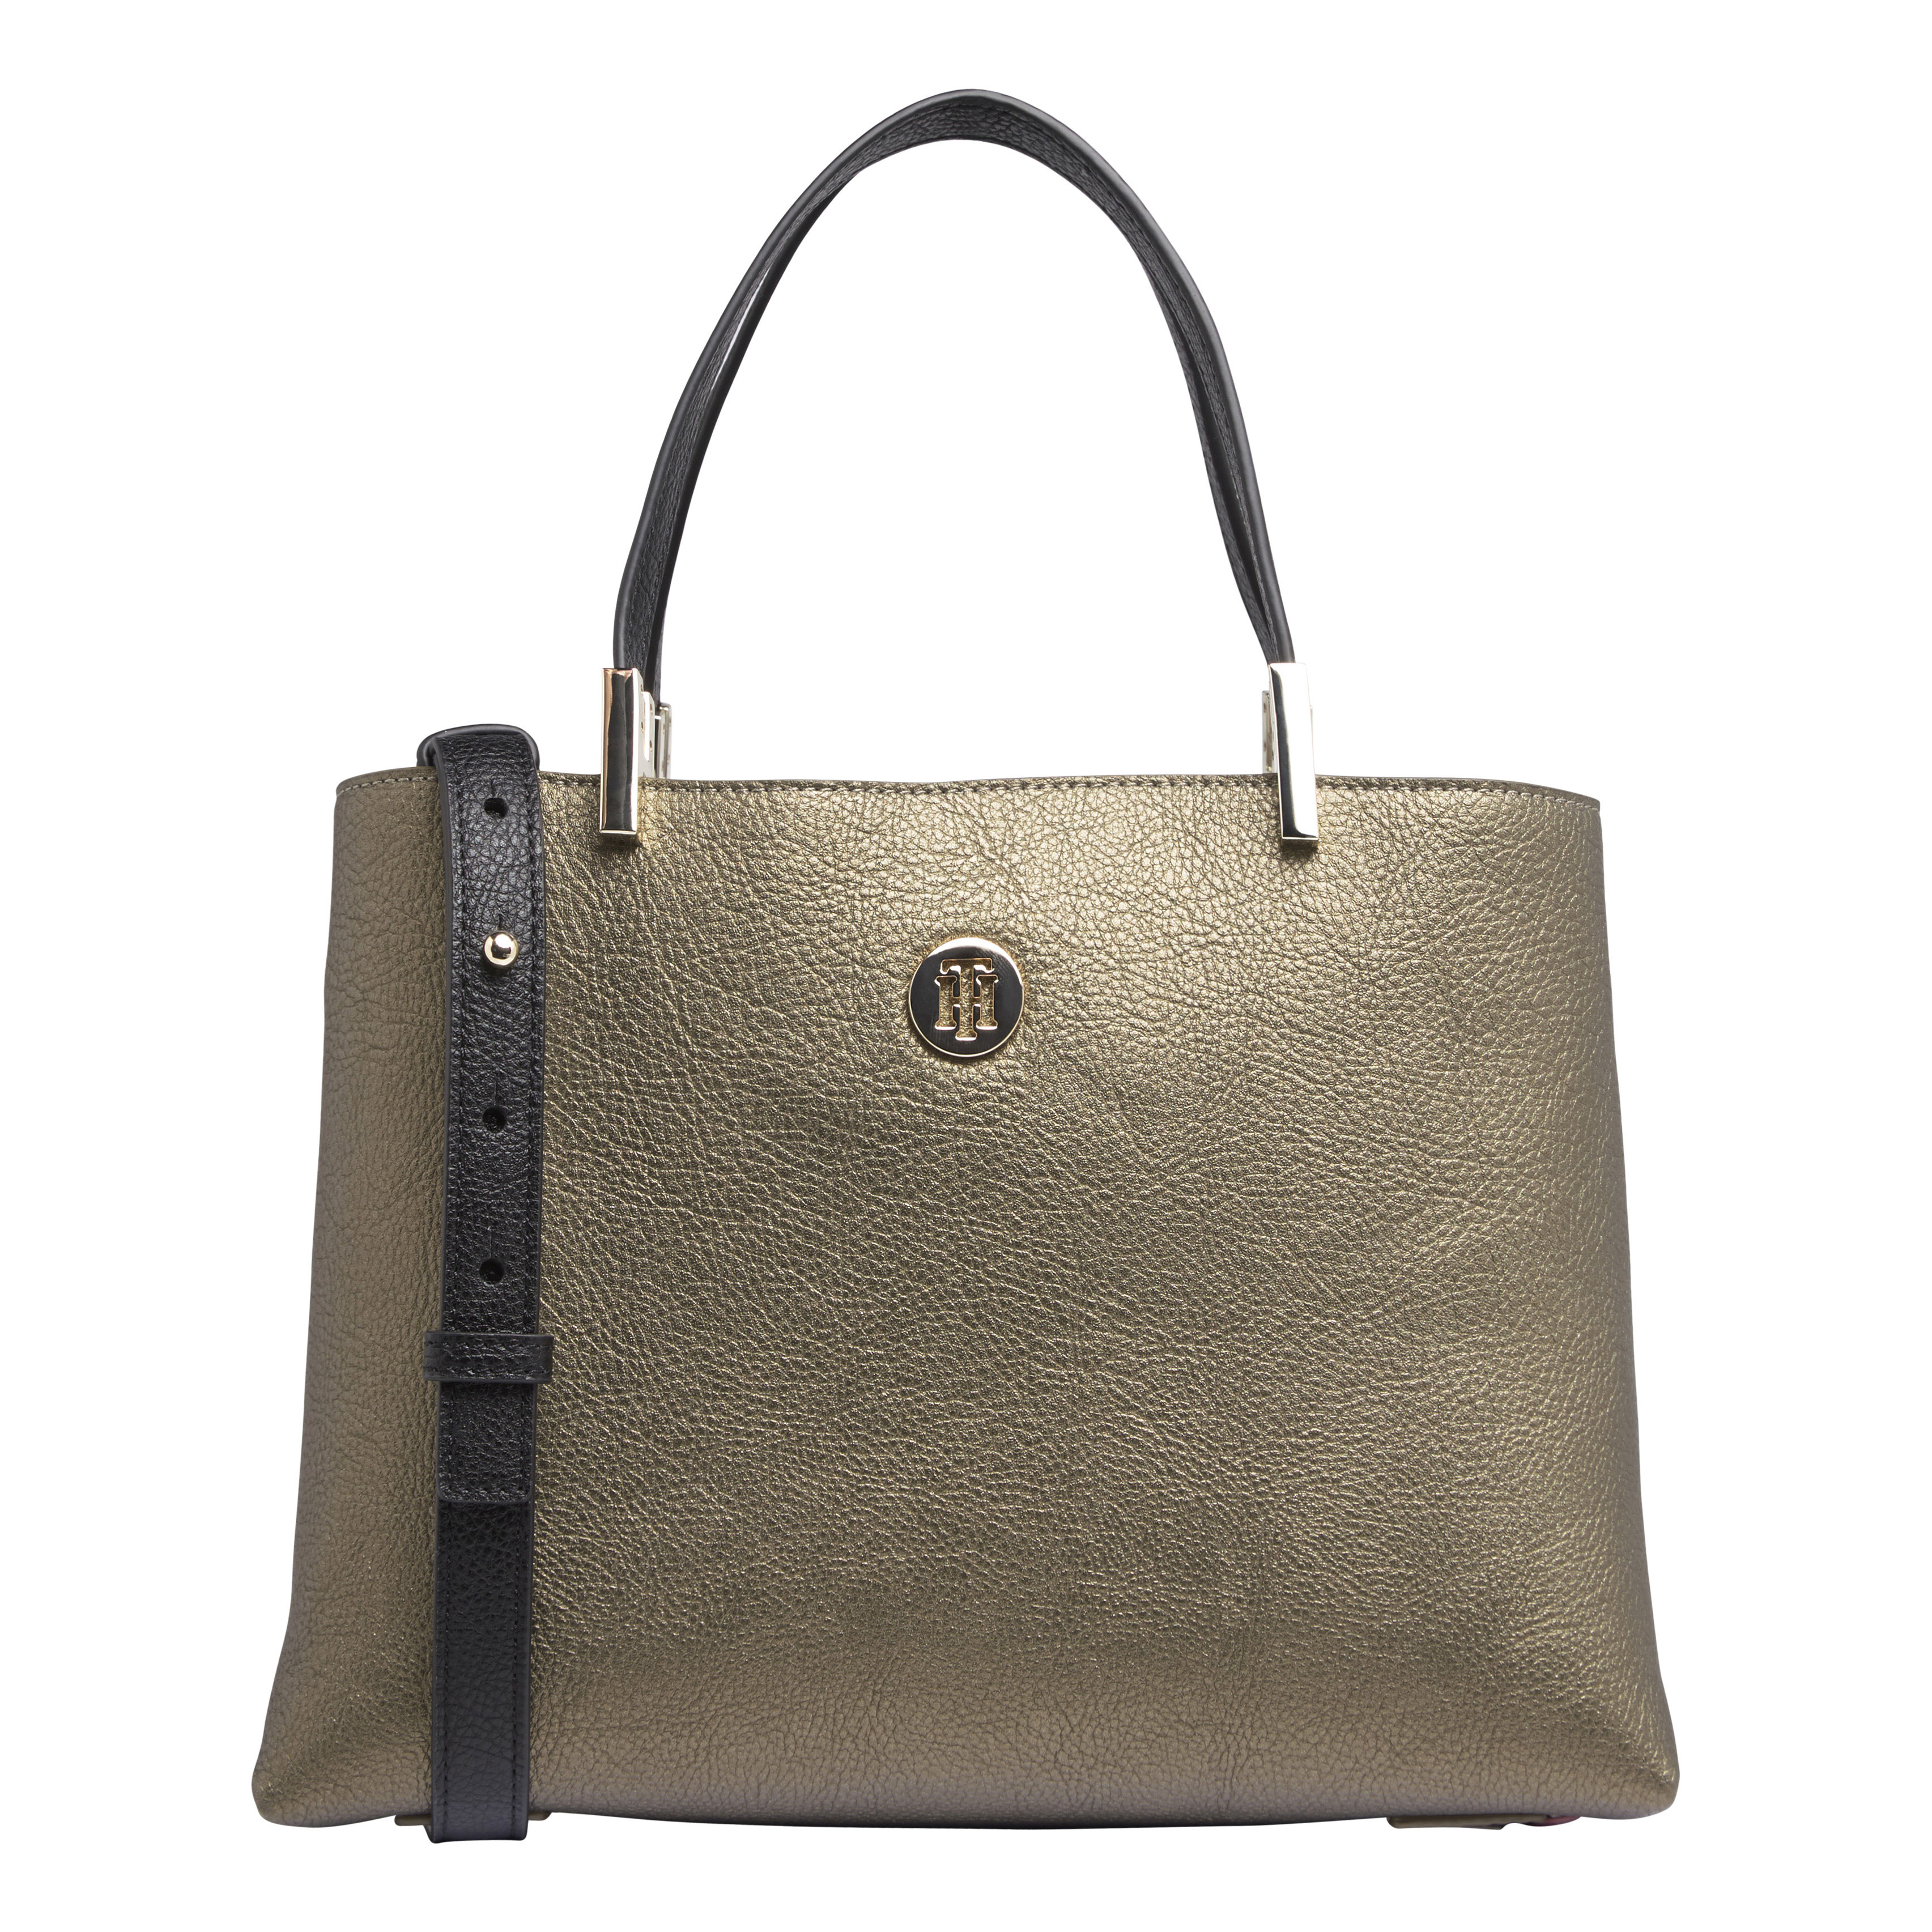 TOMMY HILFIGER Marroquinería Satchel Gold Metallic & Blac AW0AW07685-PD0